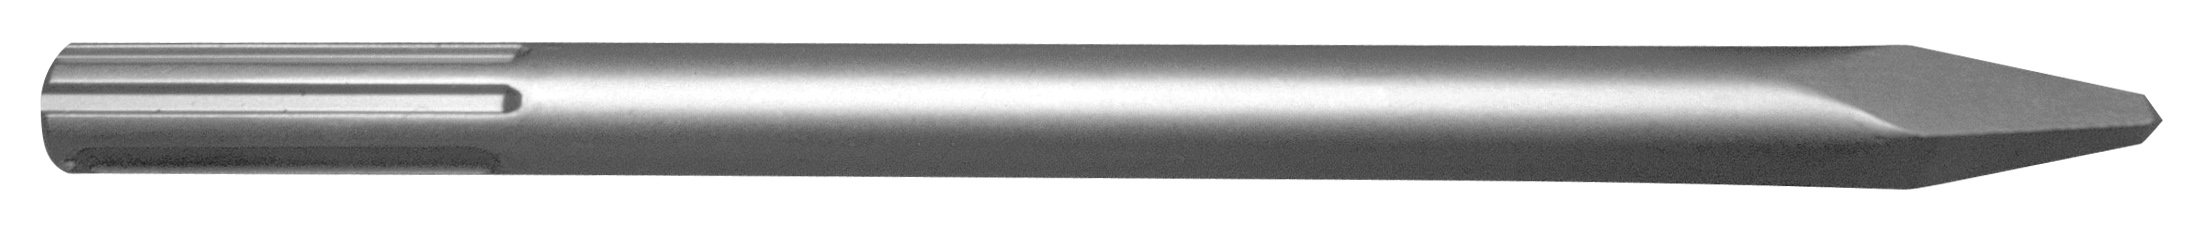 Champion Chisel, 24-Inch Long SDS-MAX Moil Point - Bull Point